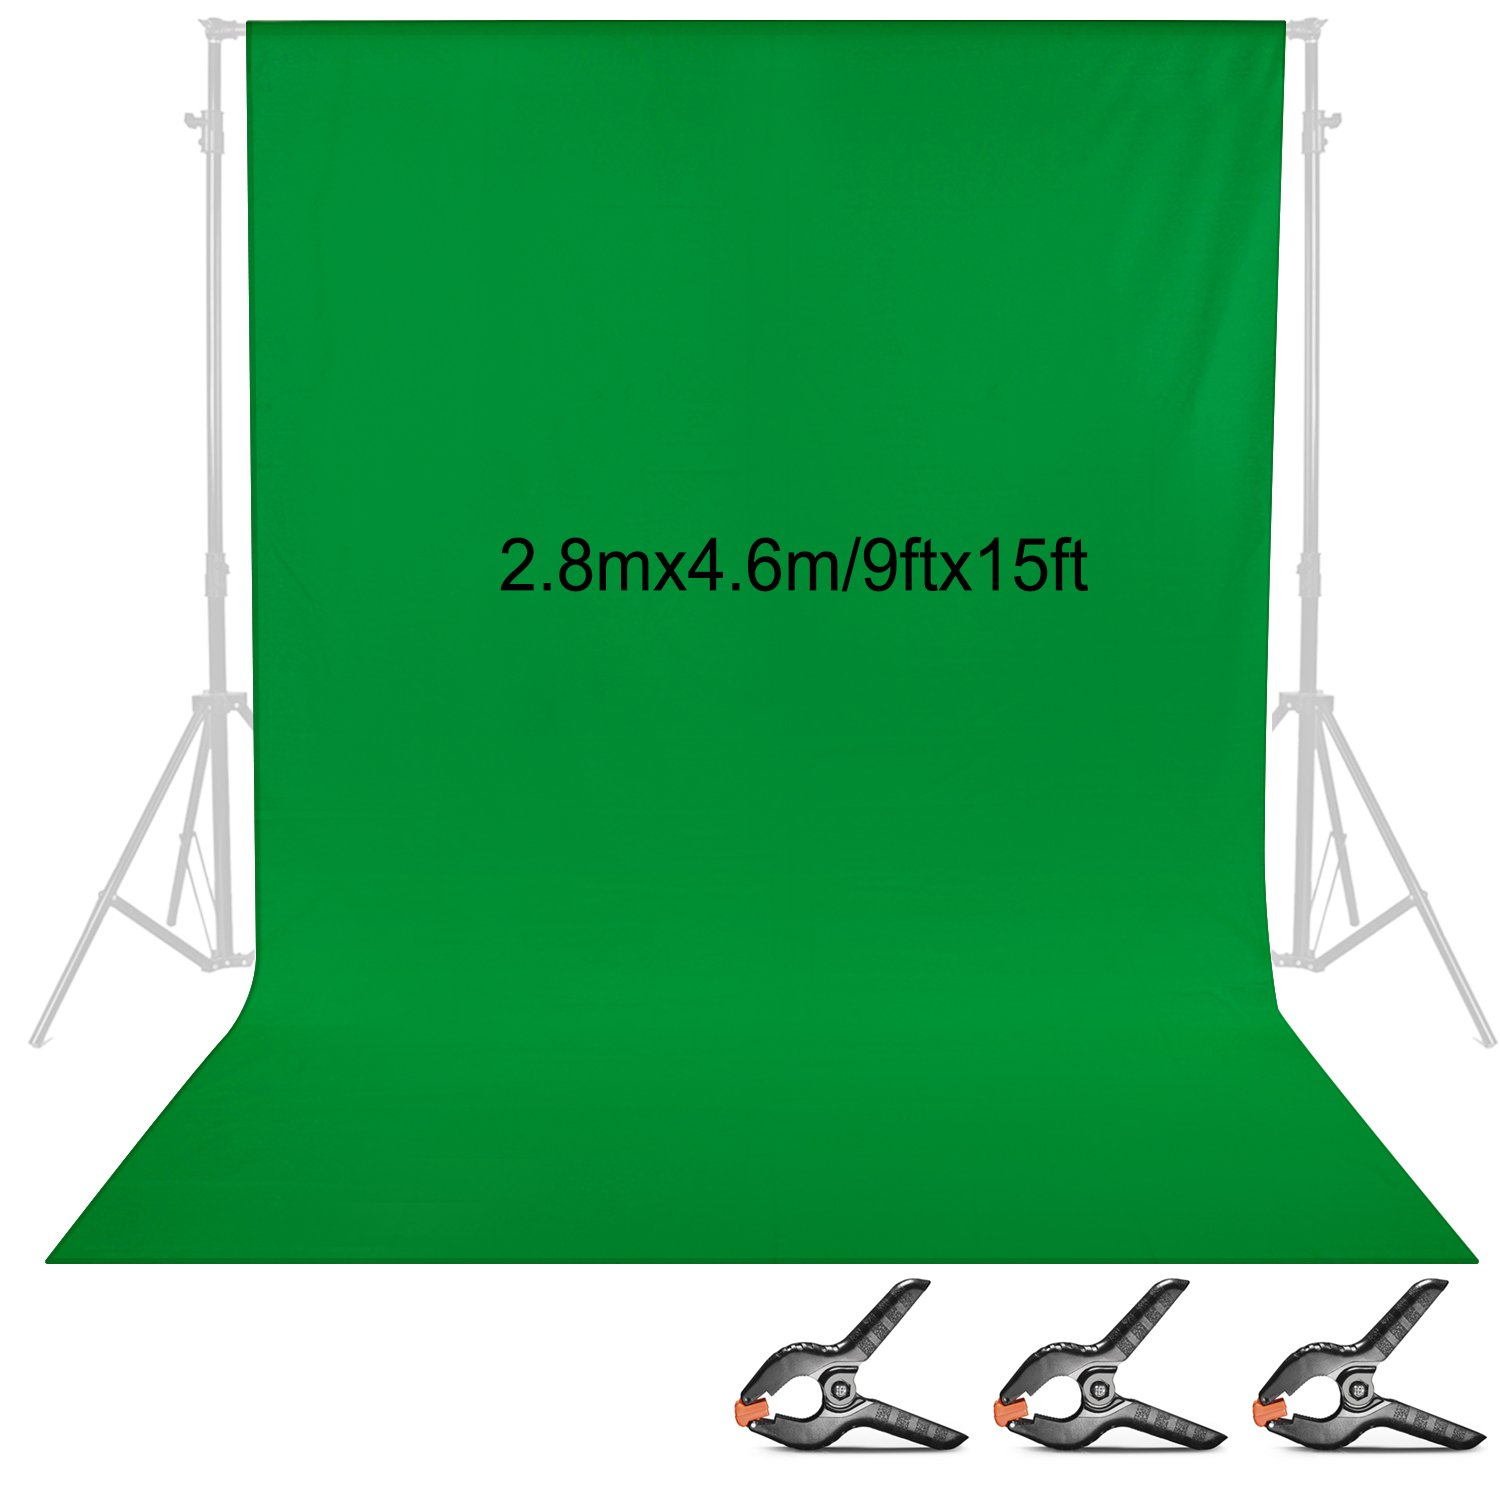 Neewer 9 x 15 feet/2.8 x 4.6 meters Fabric Photography Backdrop Background Screen with 3 Clamps for Photo Video Studio Shooting (Green) by Neewer